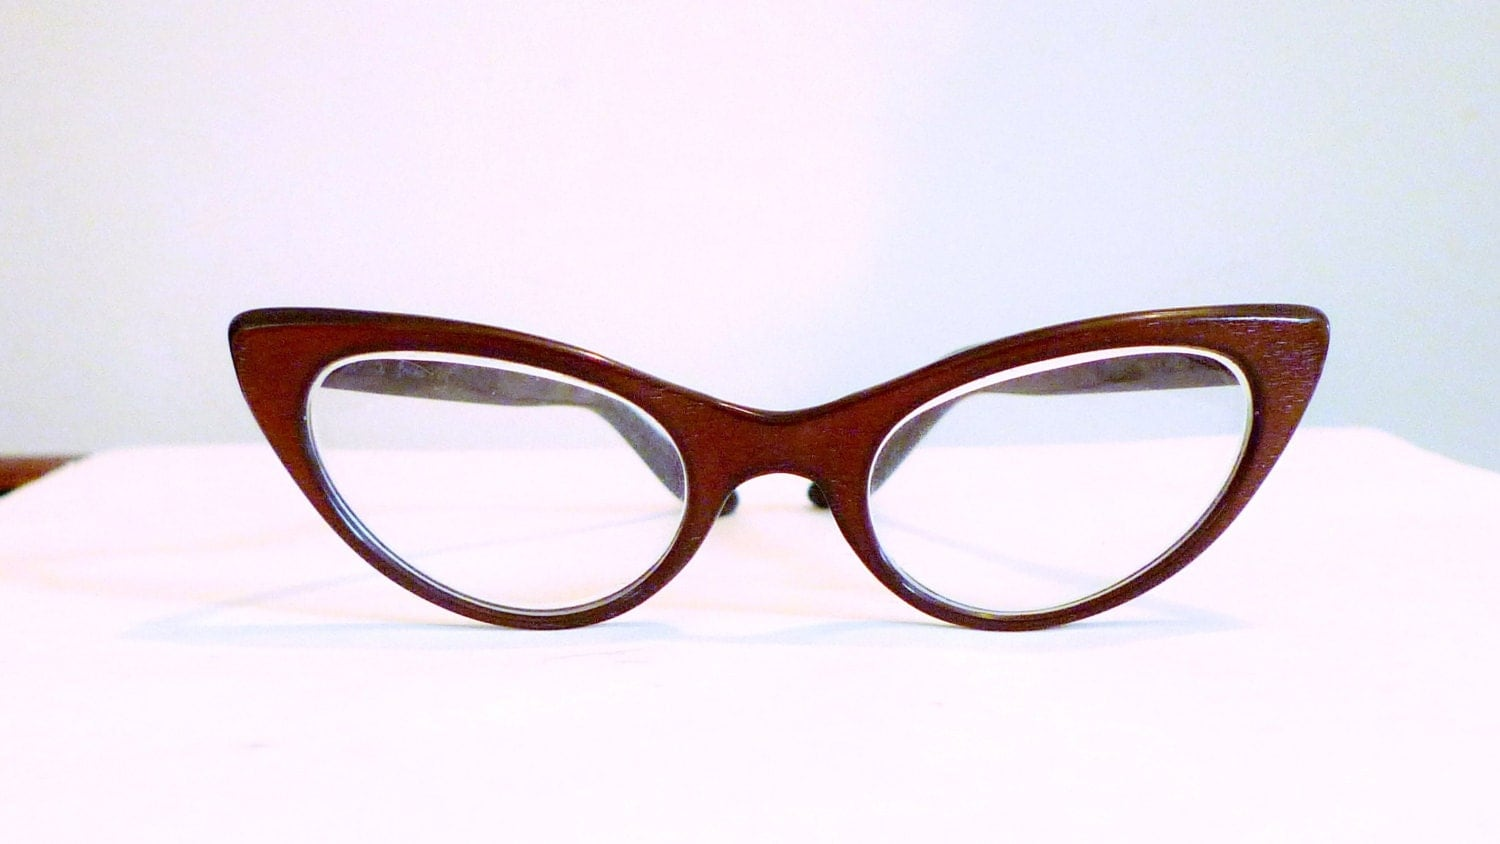 Cat Eye Frame Eye Glasses : SALE Safilo Winged Brown Cat Eye Glasses / Frame by ...